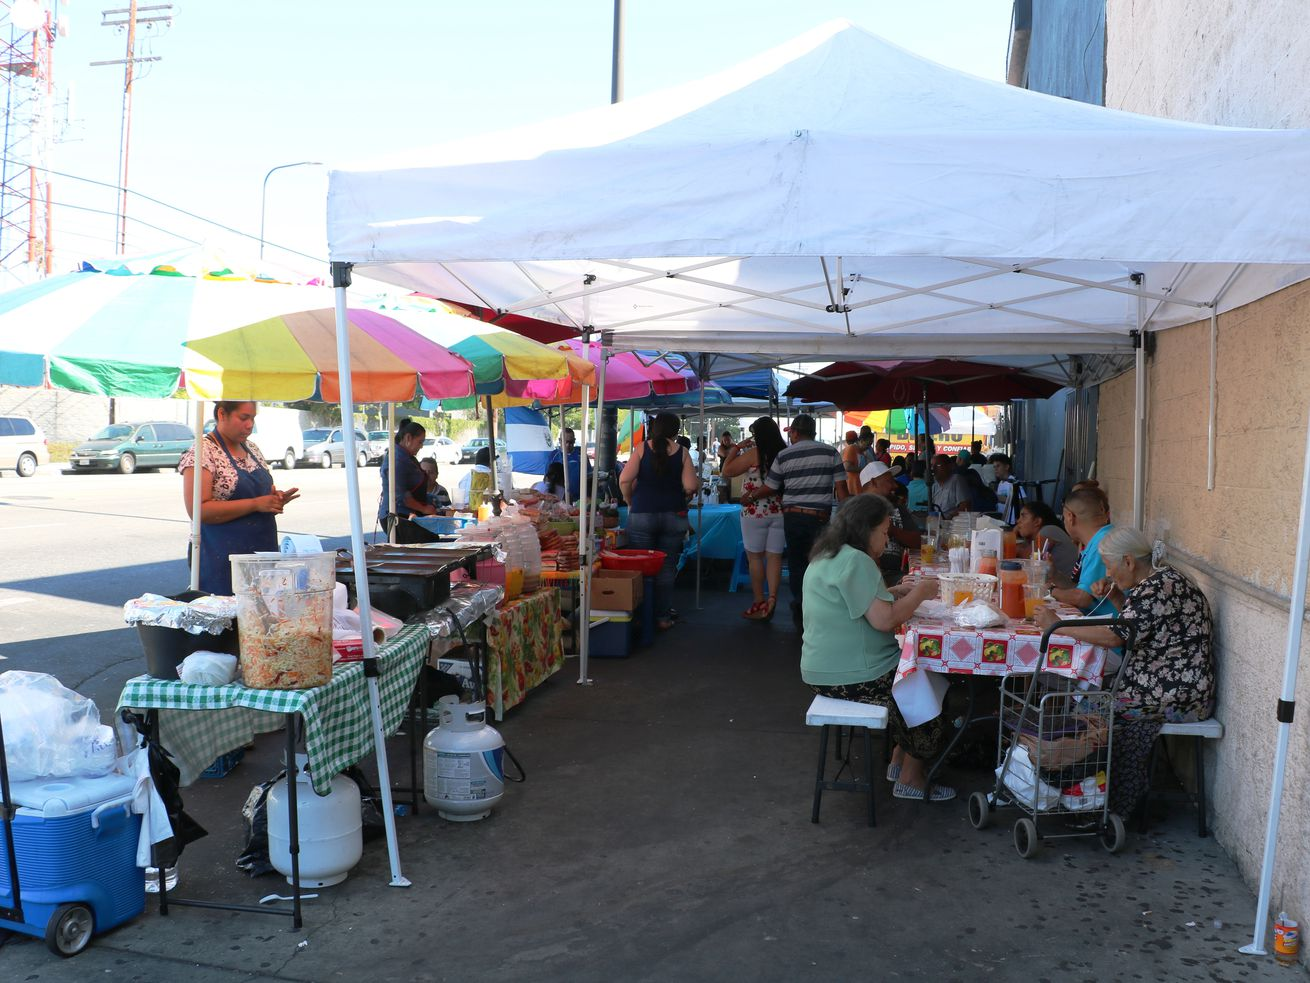 Salvadoran street market in front of Koreatown's Two Guys Plaza with stalls and cooked foods.